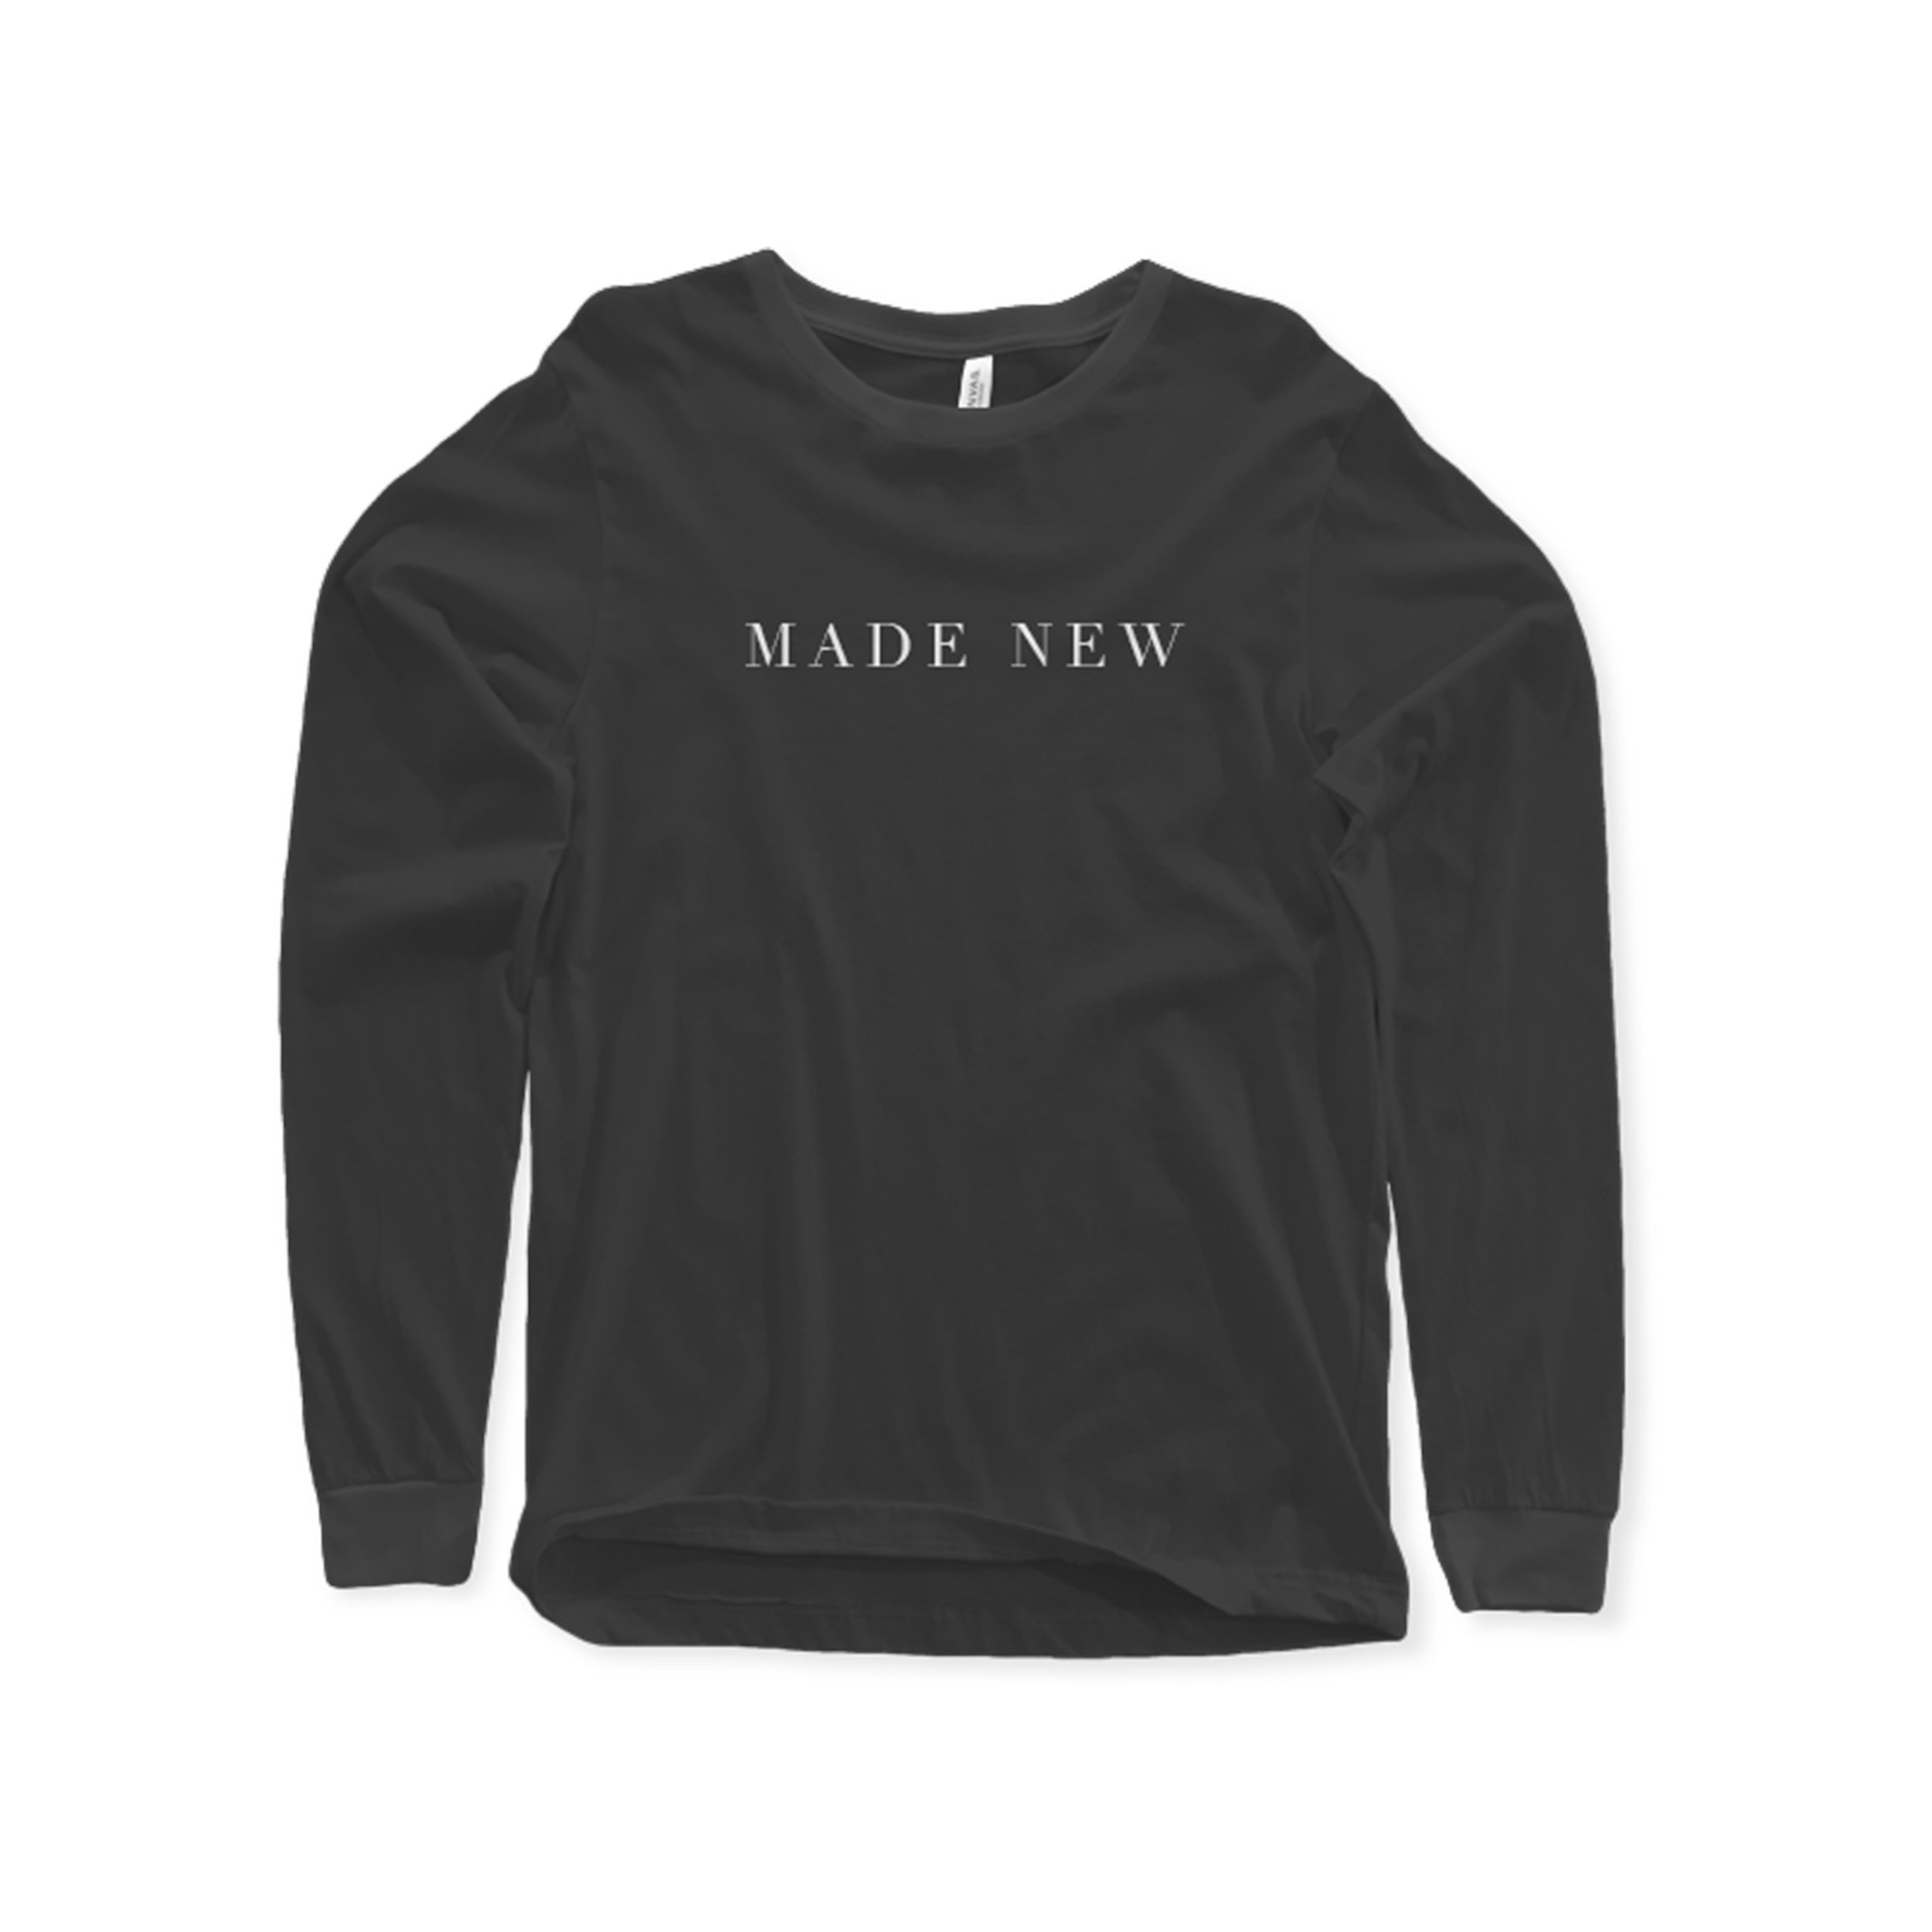 MADE NEW Long Sleeve Shirt    $20.00   Our Made New shirt is printed on a Black Comfort Colors shirt. This cozy long sleeve t‑shirt feels like you've owned it for years! Great pigment‑dyed color selection gives your group a classic cool look that will last. The run big/true to size.